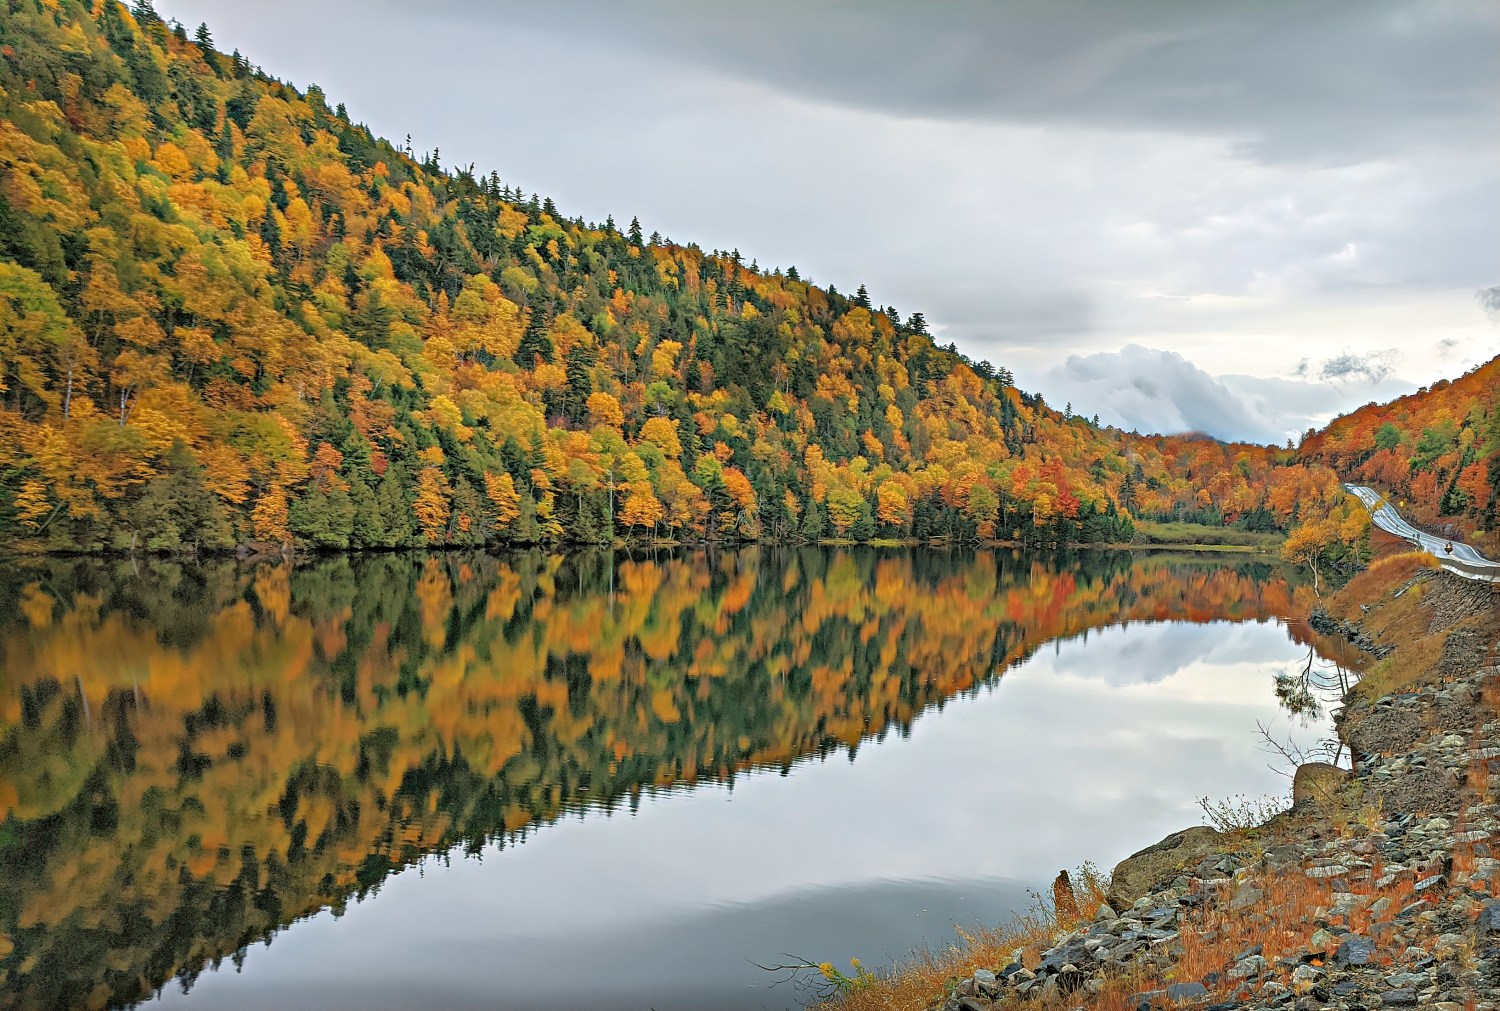 You can find so much beauty in the Adirondacks!